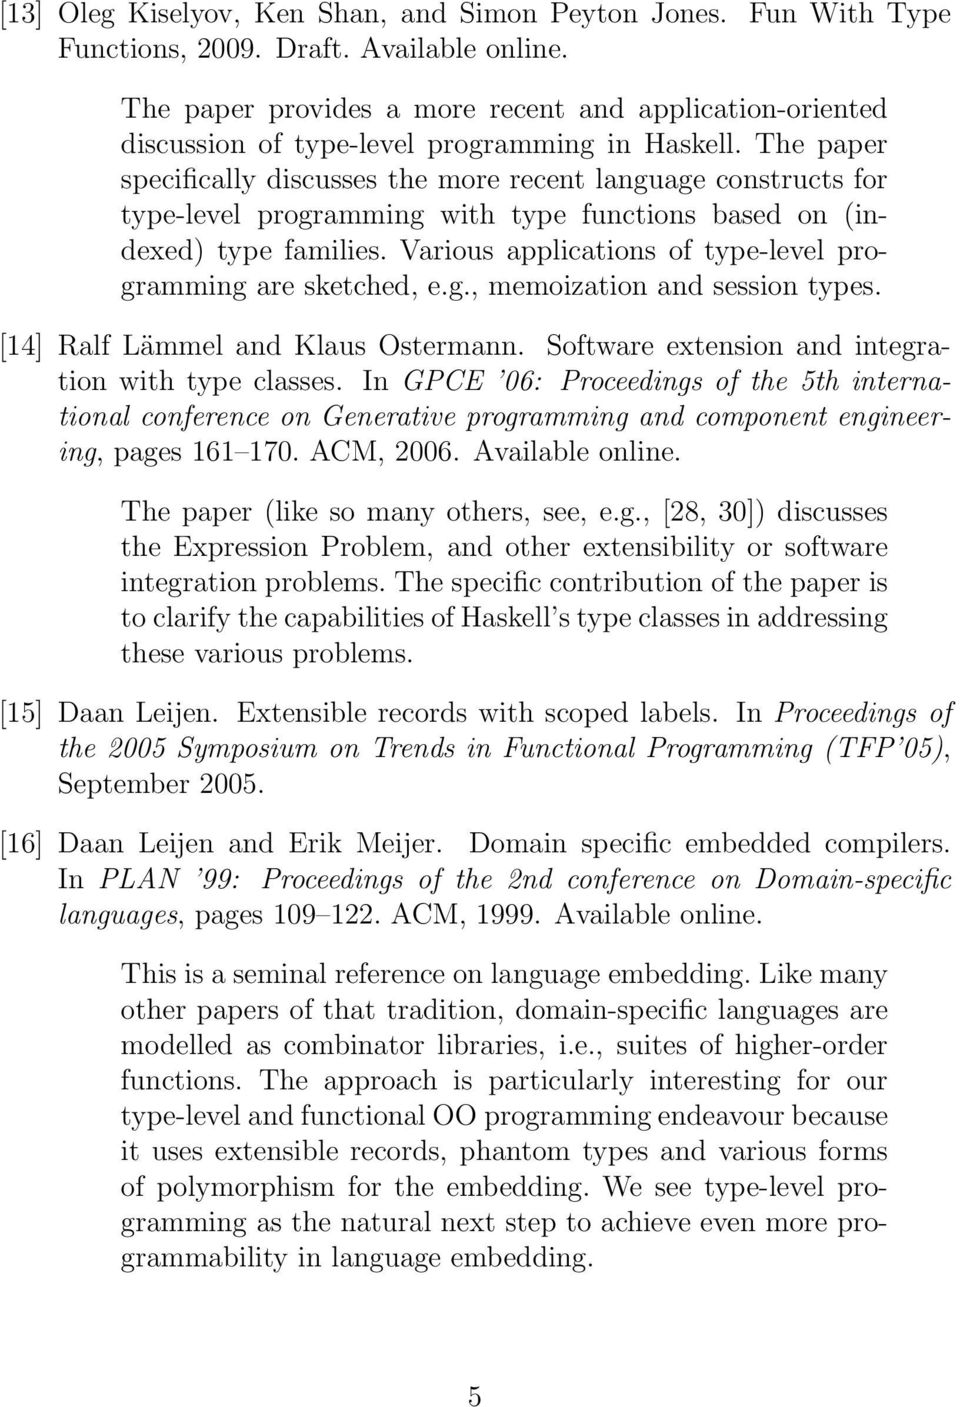 The paper specifically discusses the more recent language constructs for type-level programming with type functions based on (indexed) type families.